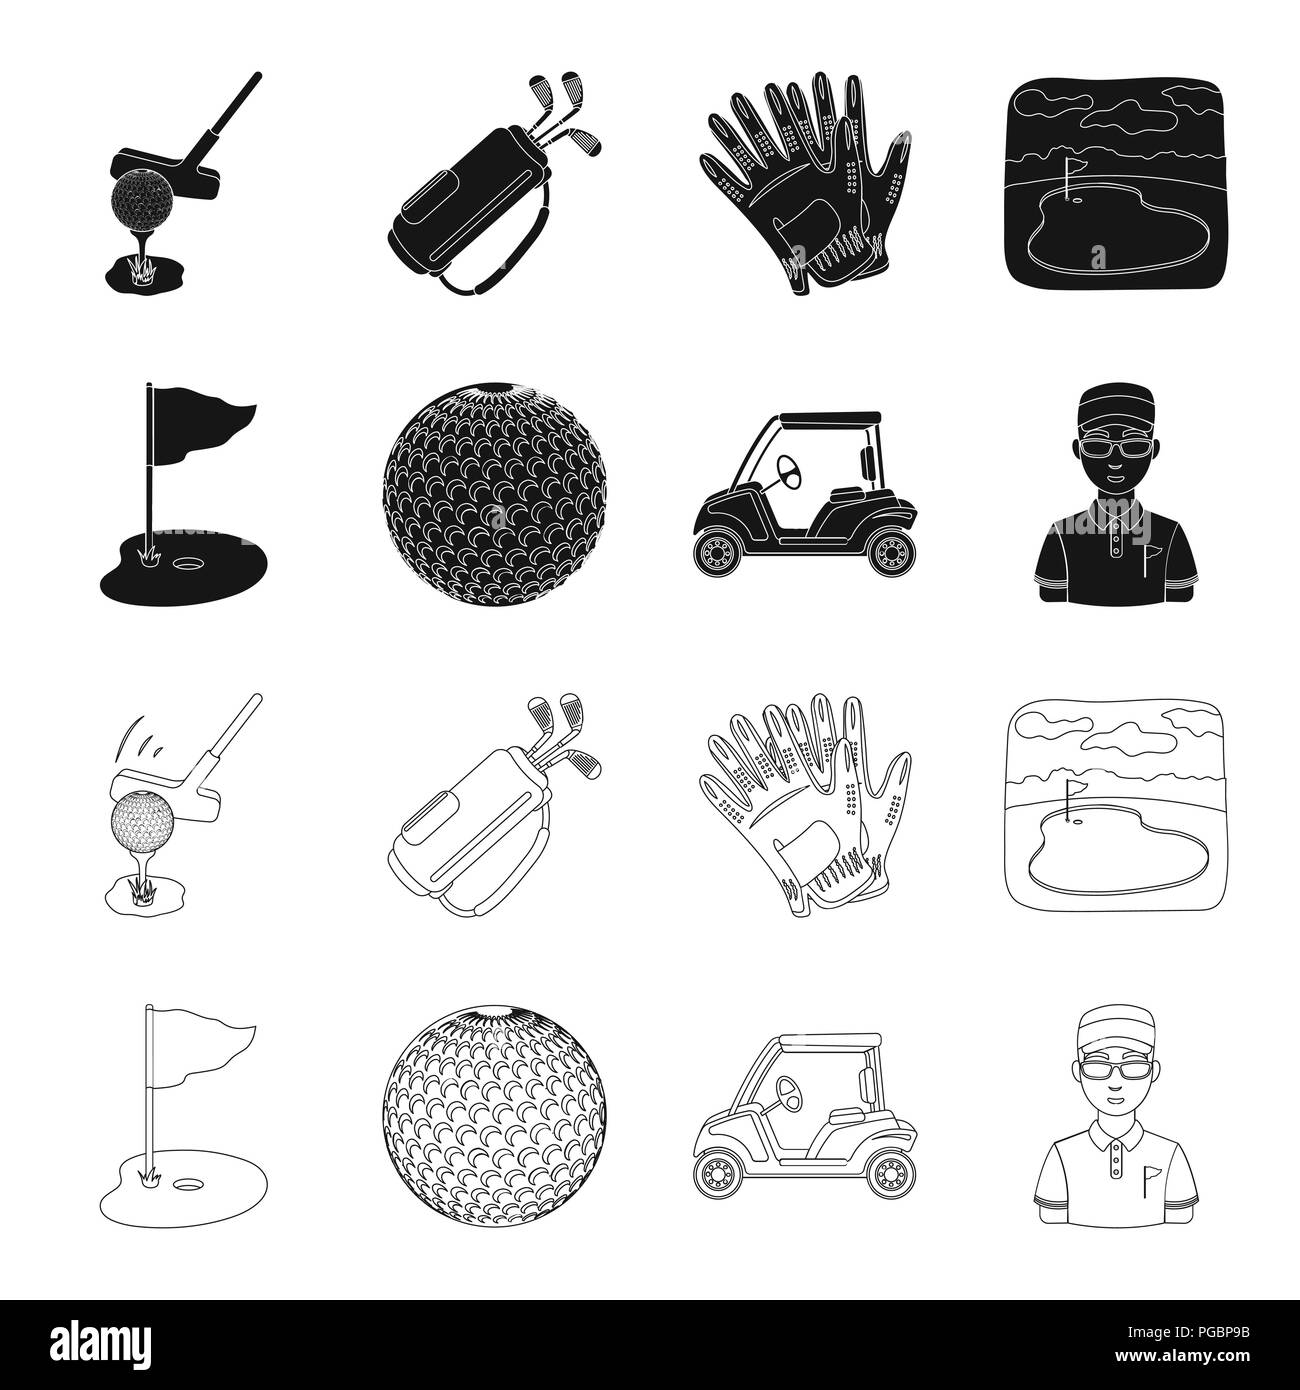 Golf Cart Drawing Html on tires drawing, boat drawing, golf carts less than 500, light tower drawing, garage drawing, car drawing, telehandler drawing, gold drawing, trolley drawing, auto drawing, golf clip aet, engine drawing, motorized bicycle drawing, golf ball drawing, golf swing, golf cartoons, motorcycle drawing, bike drawing, tools drawing, apollo command module drawing,